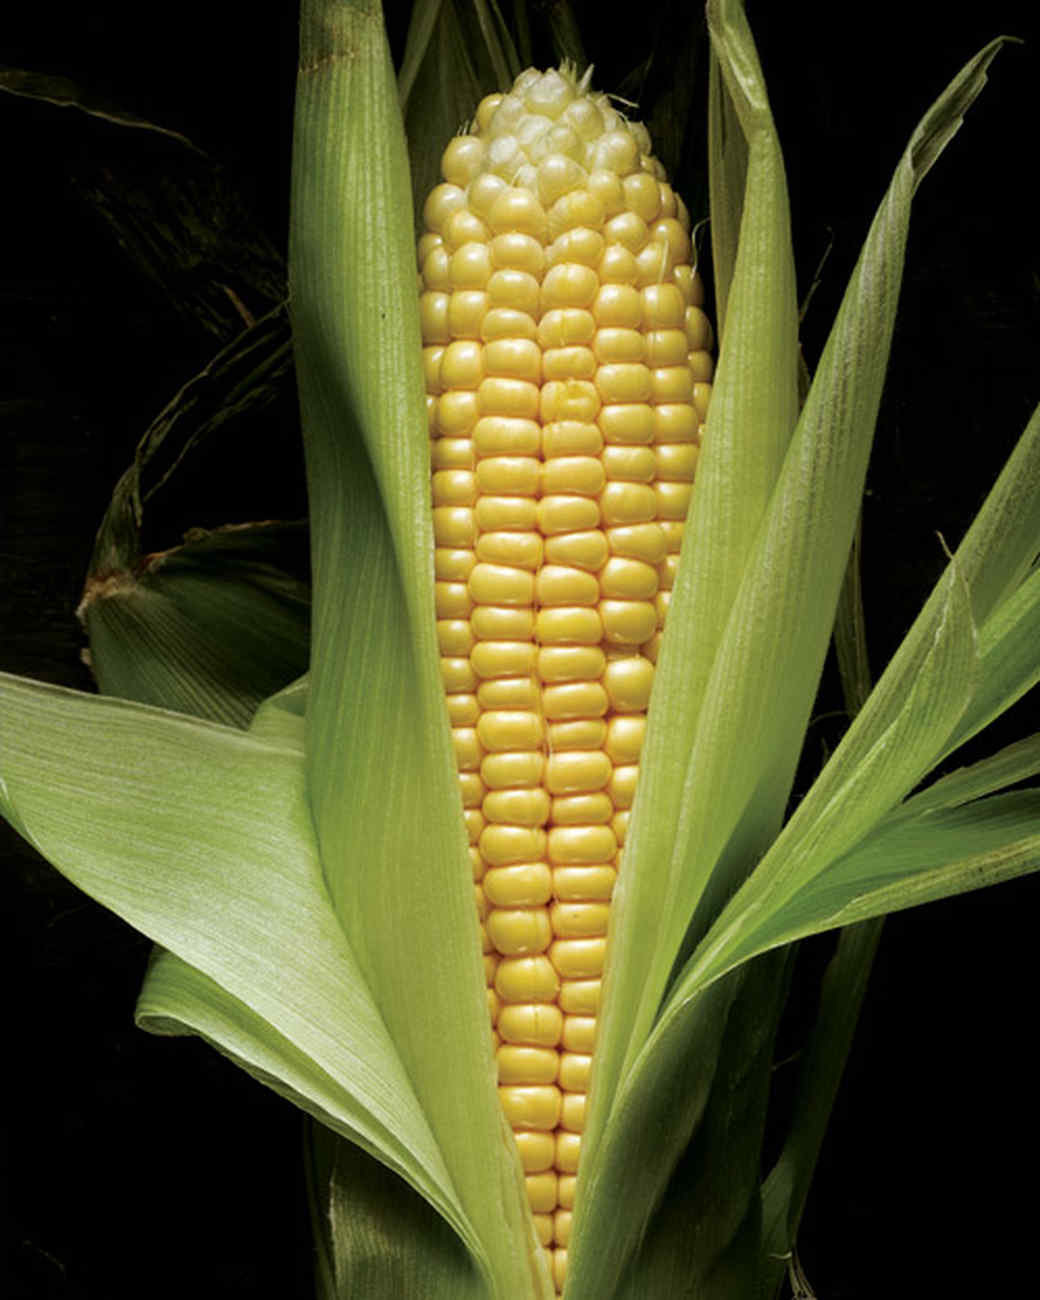 ld101342msl_0705_corn_raw.jpg